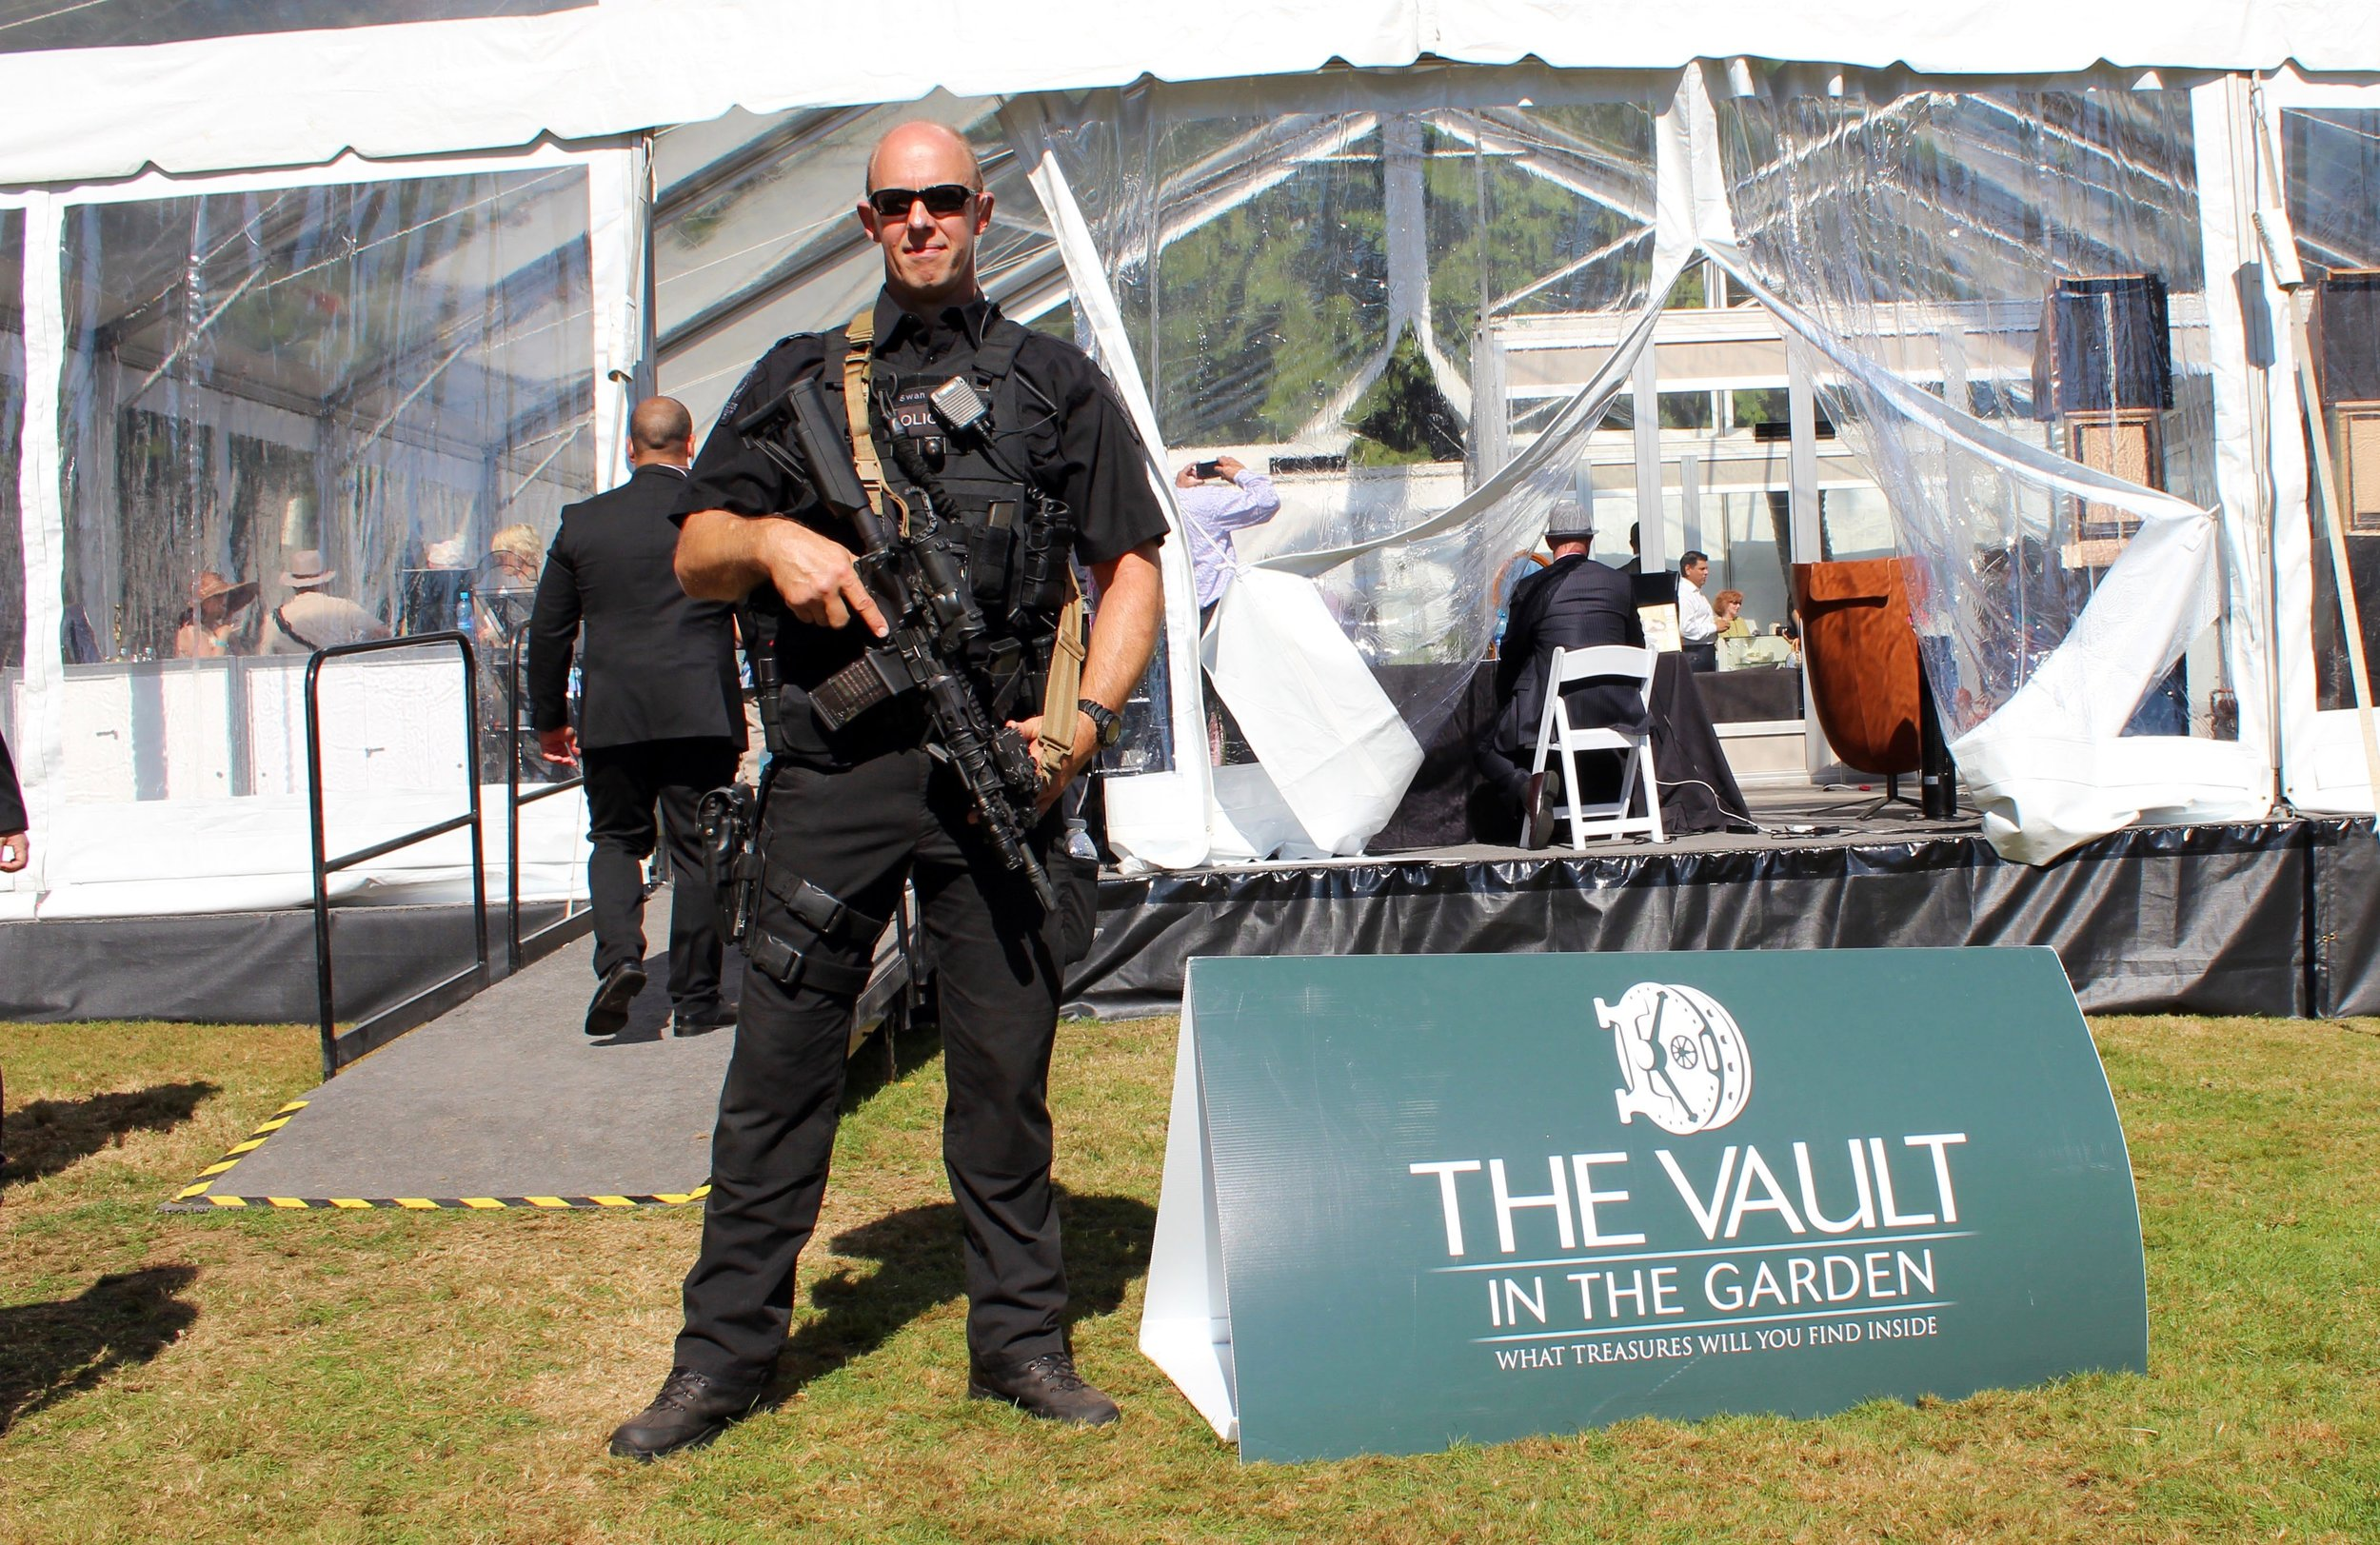 Securing over $200,000,000 at the Vault in the Garden 2015